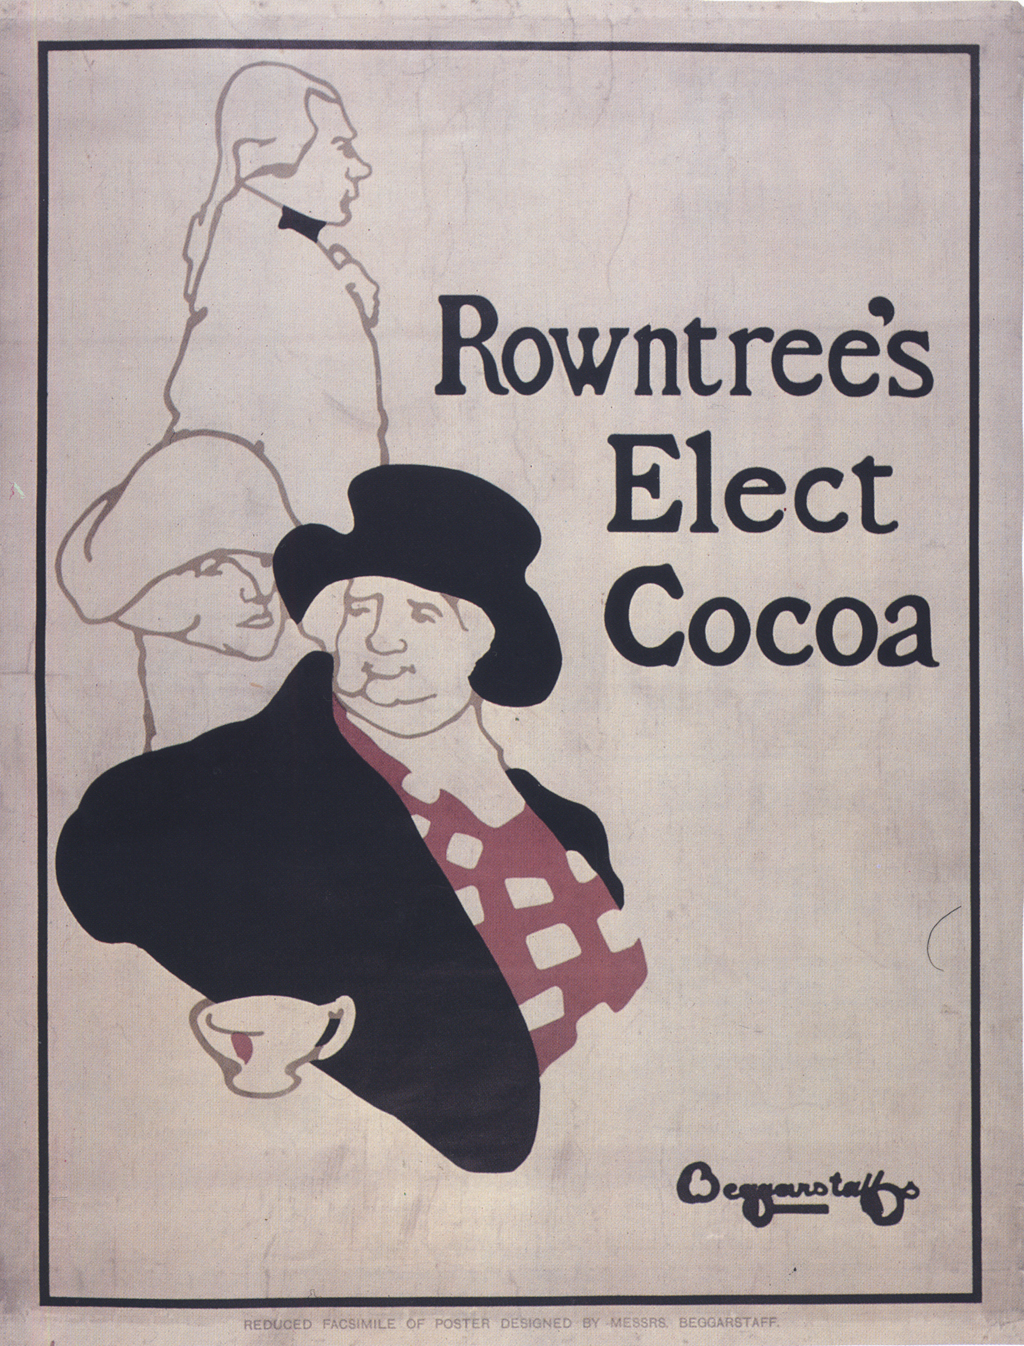 Rowntree's Elect Cocoa (1896). Poster by The Beggarstaff Brothers (William Nicholson and James Pryde). Lithograph.